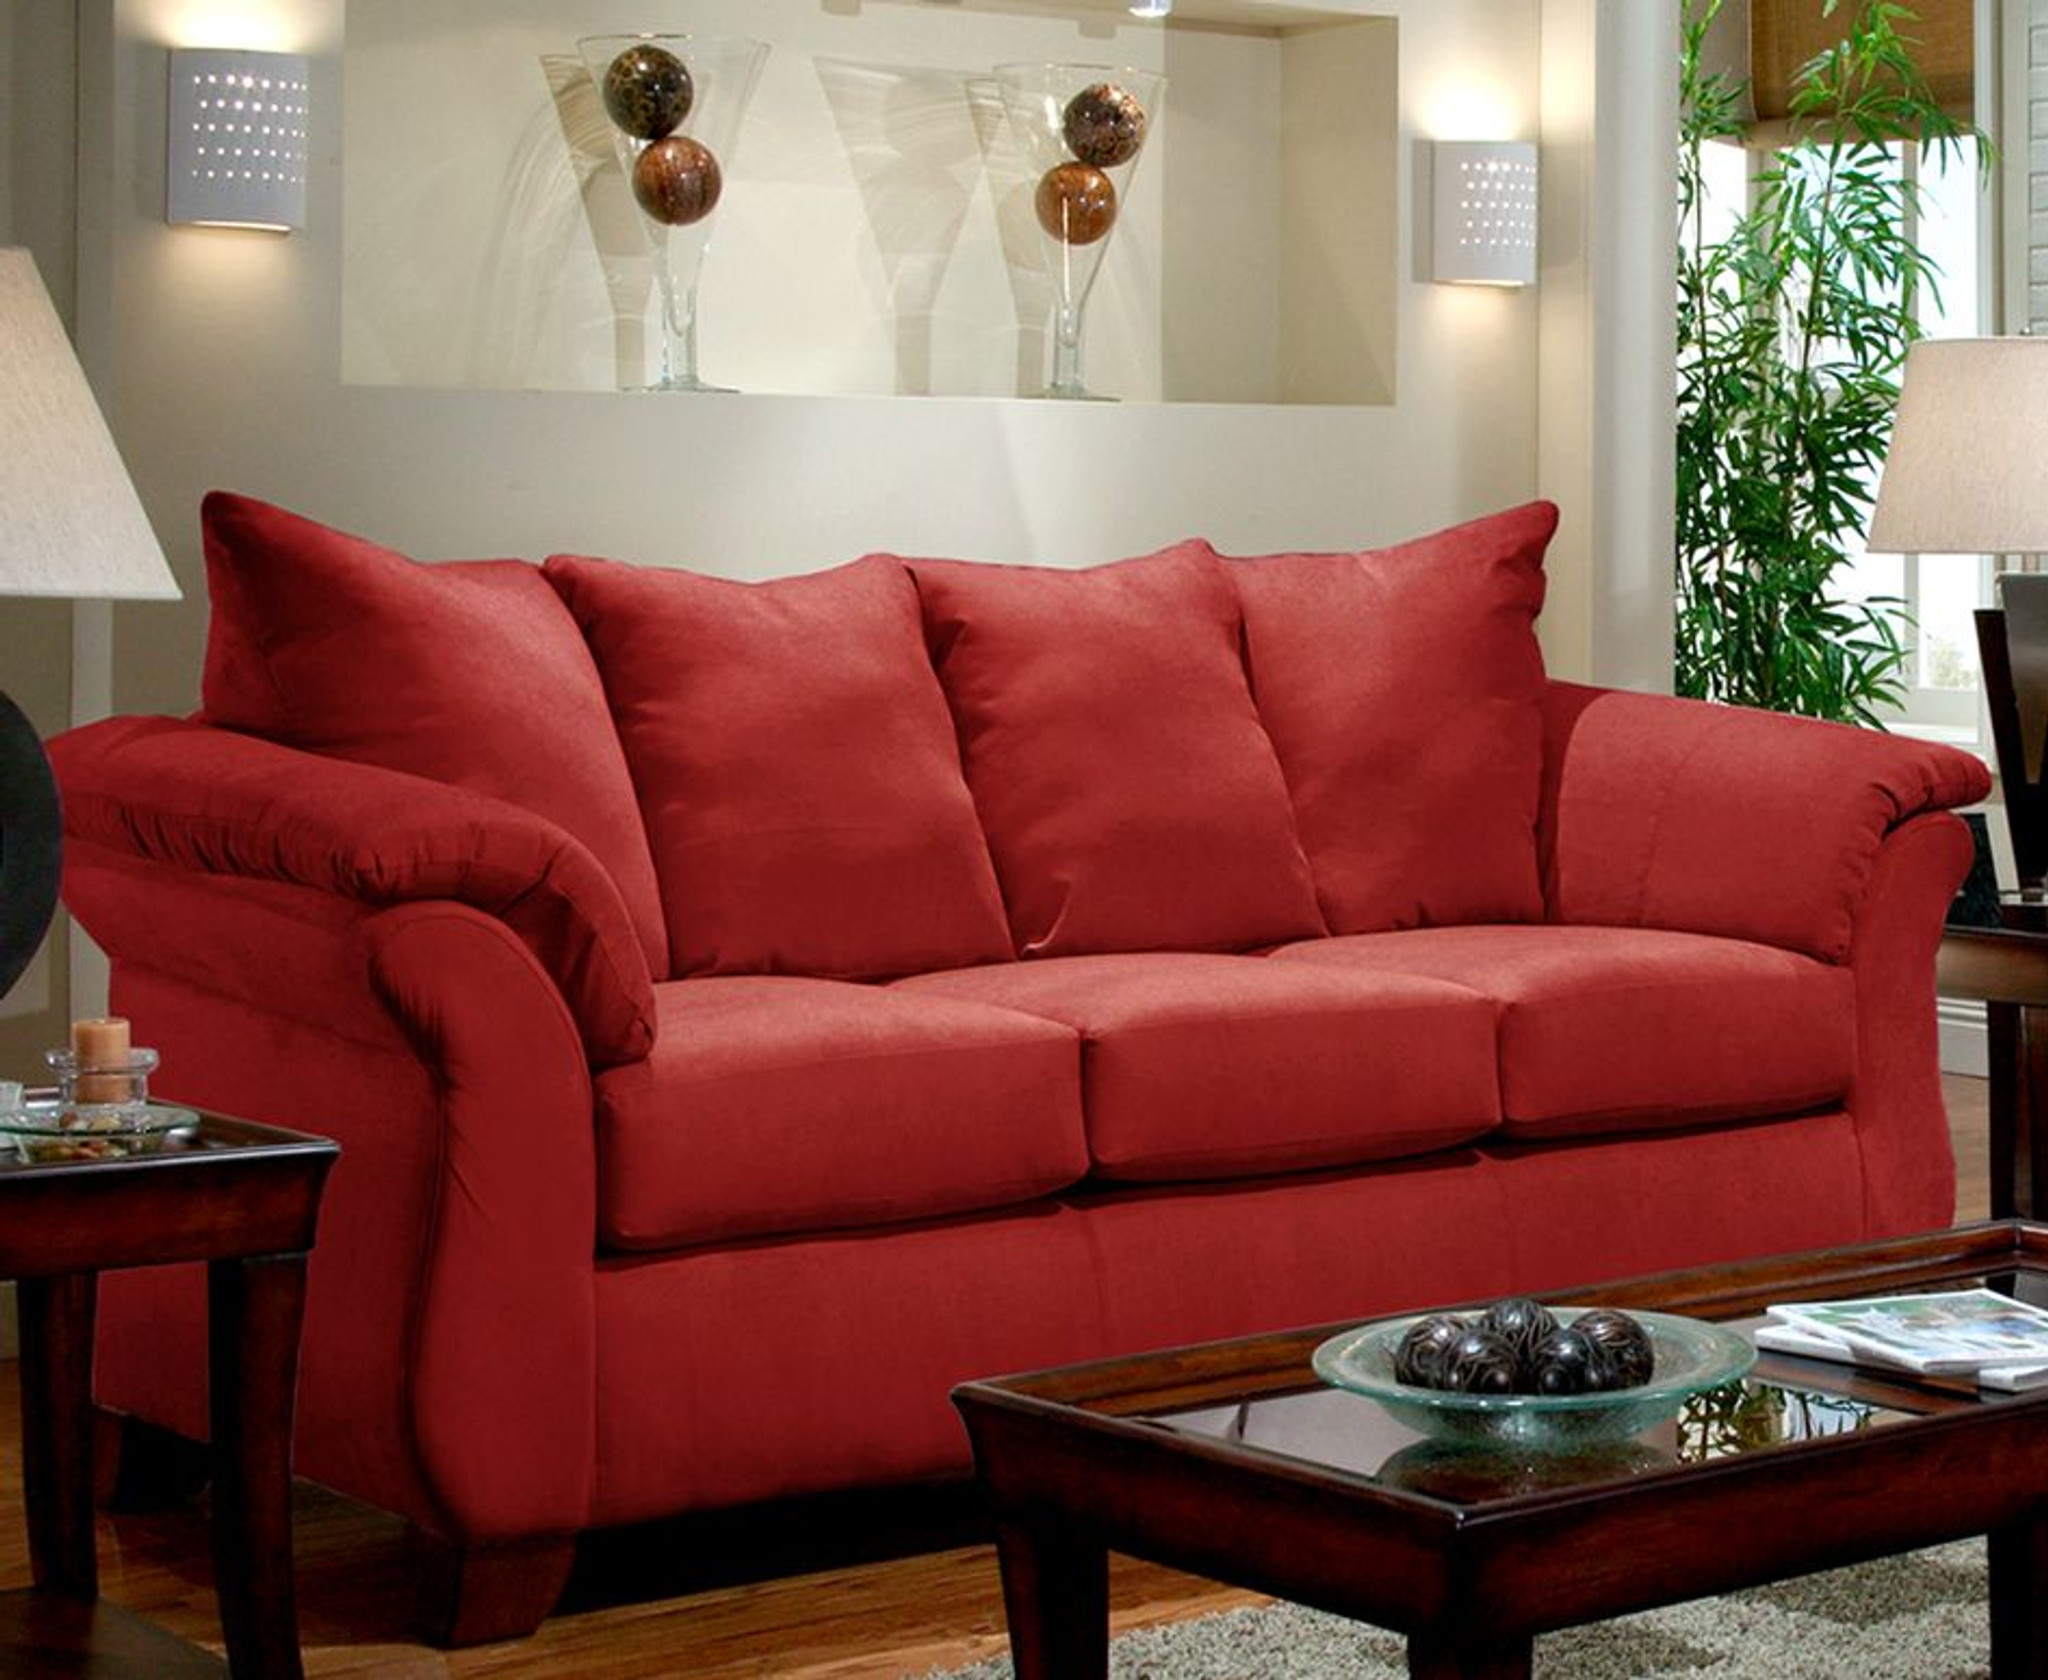 Attirant Clearing House Furniture